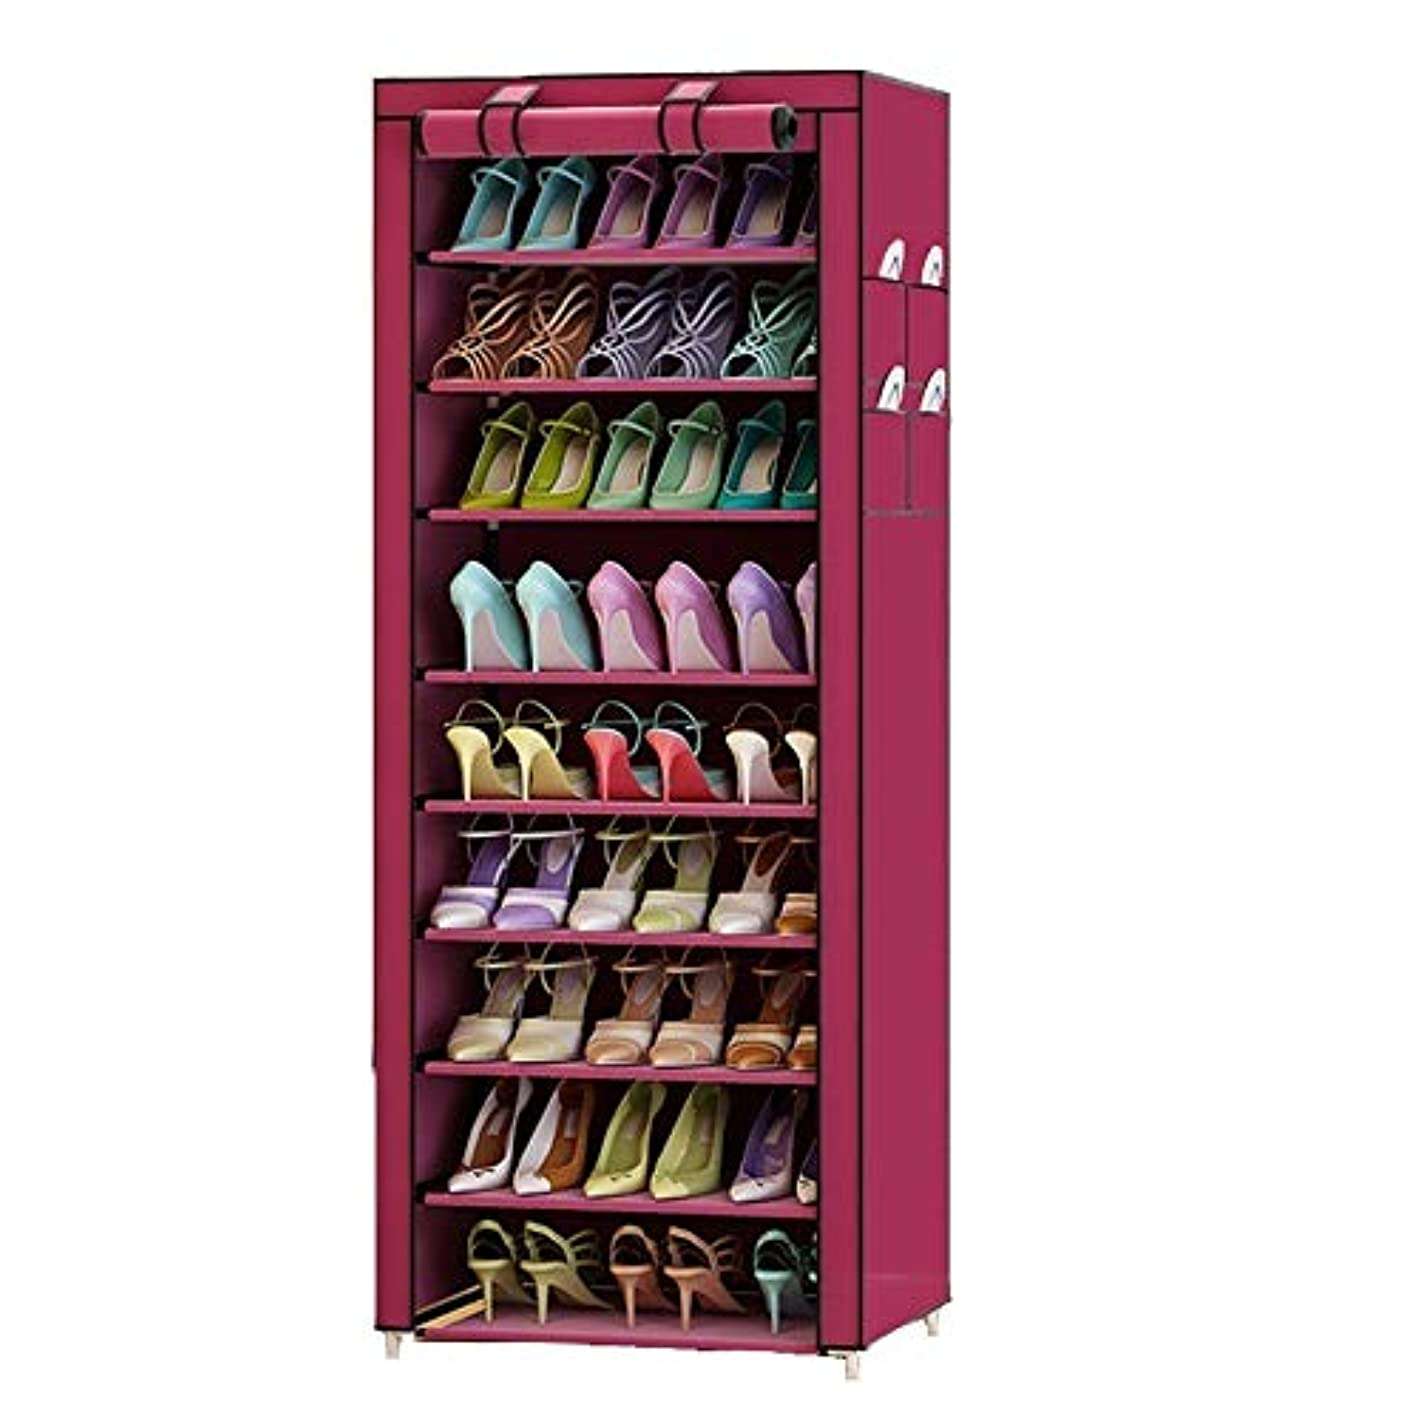 GZCZ Dustproof Home Shoe Racks Organizer Shoe Cabinet Multiple Layers Shoes Shelf Shoe Rack with Cover (Red) …